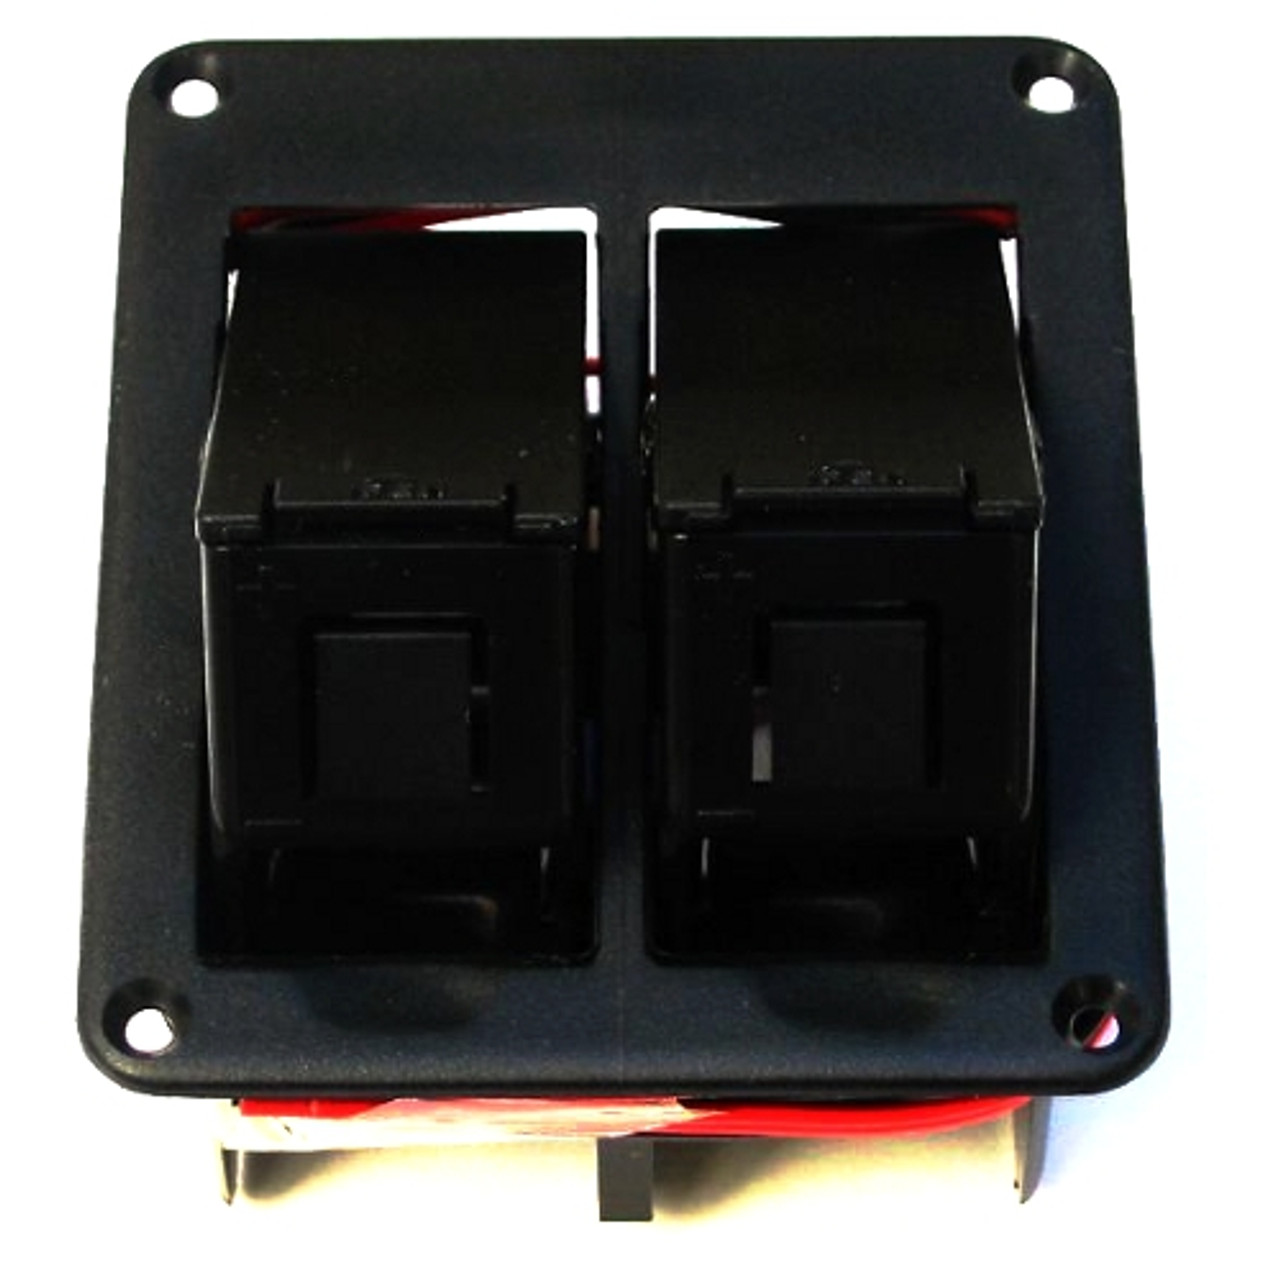 Dual Battery Box Front View Open